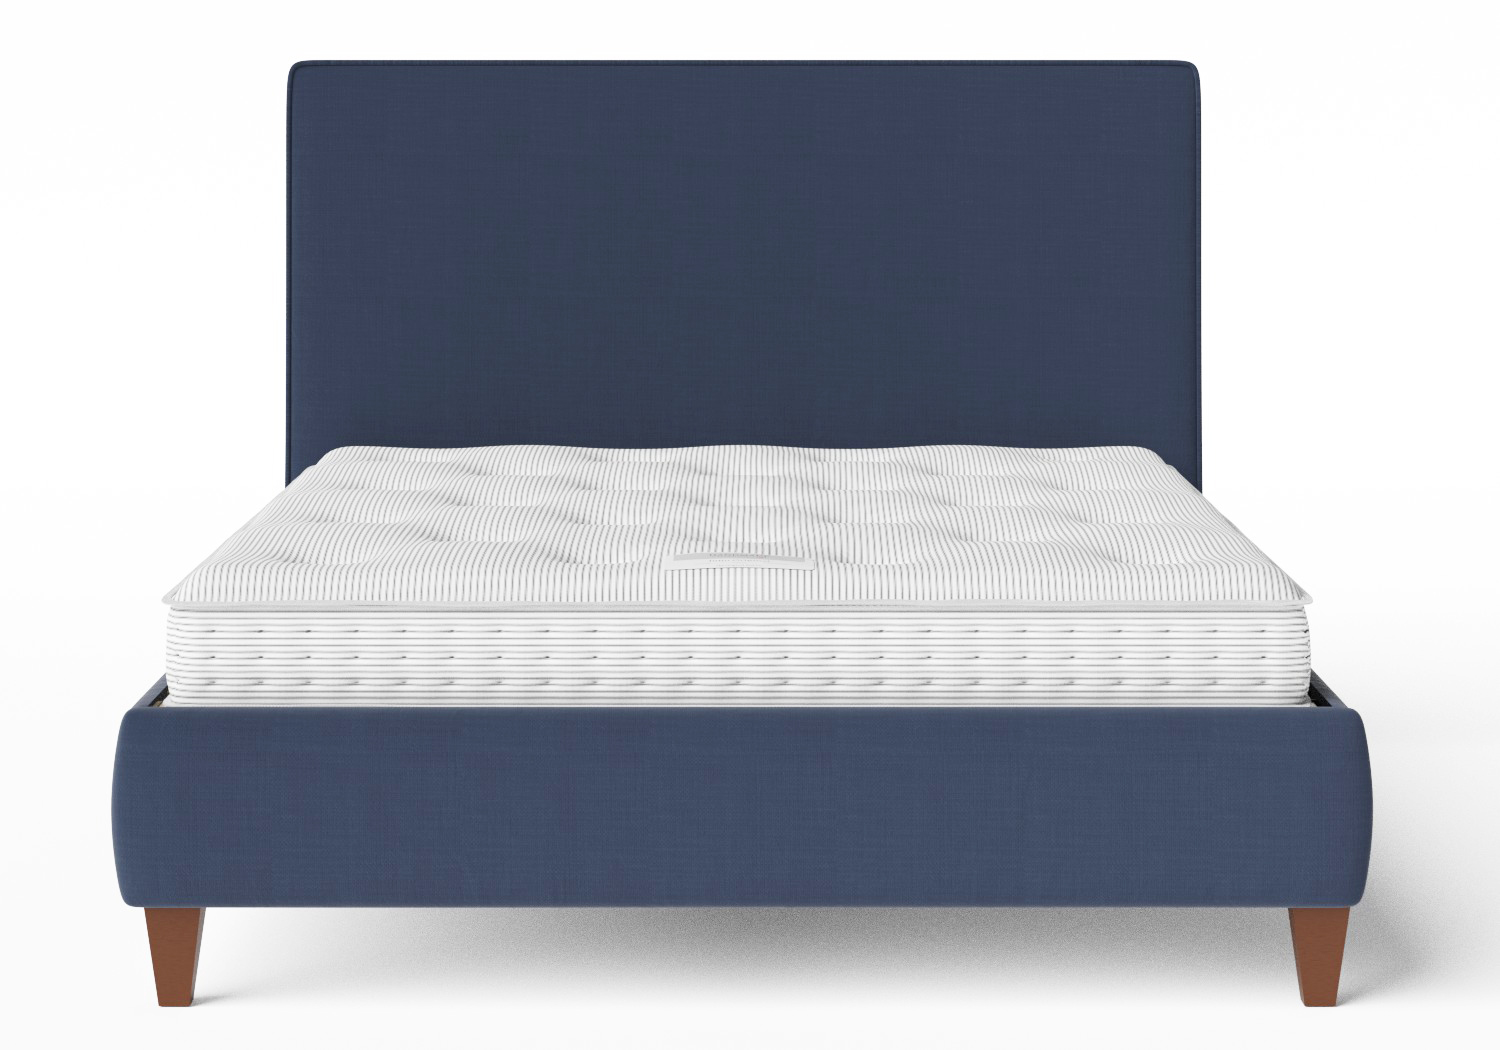 Yushan Upholstered Bed in Navy fabric with piping shown with Juno 1 mattress